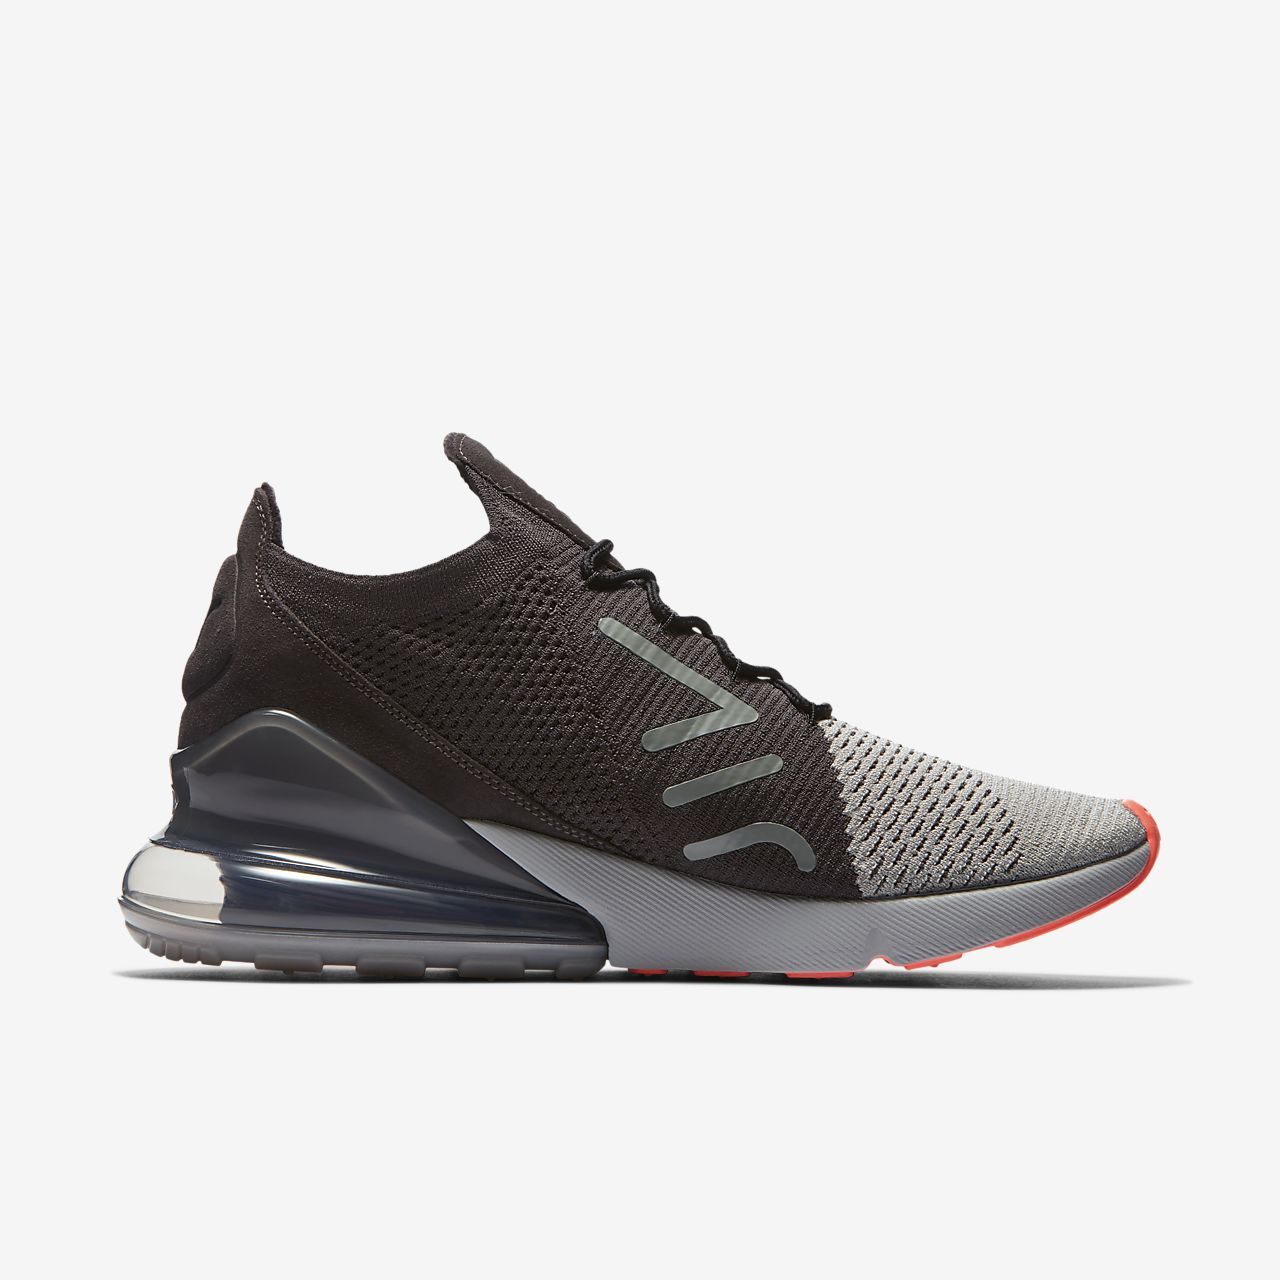 Nike Air HommeFr Flyknit Pour Max 270 Chaussure OXwTlPiukZ